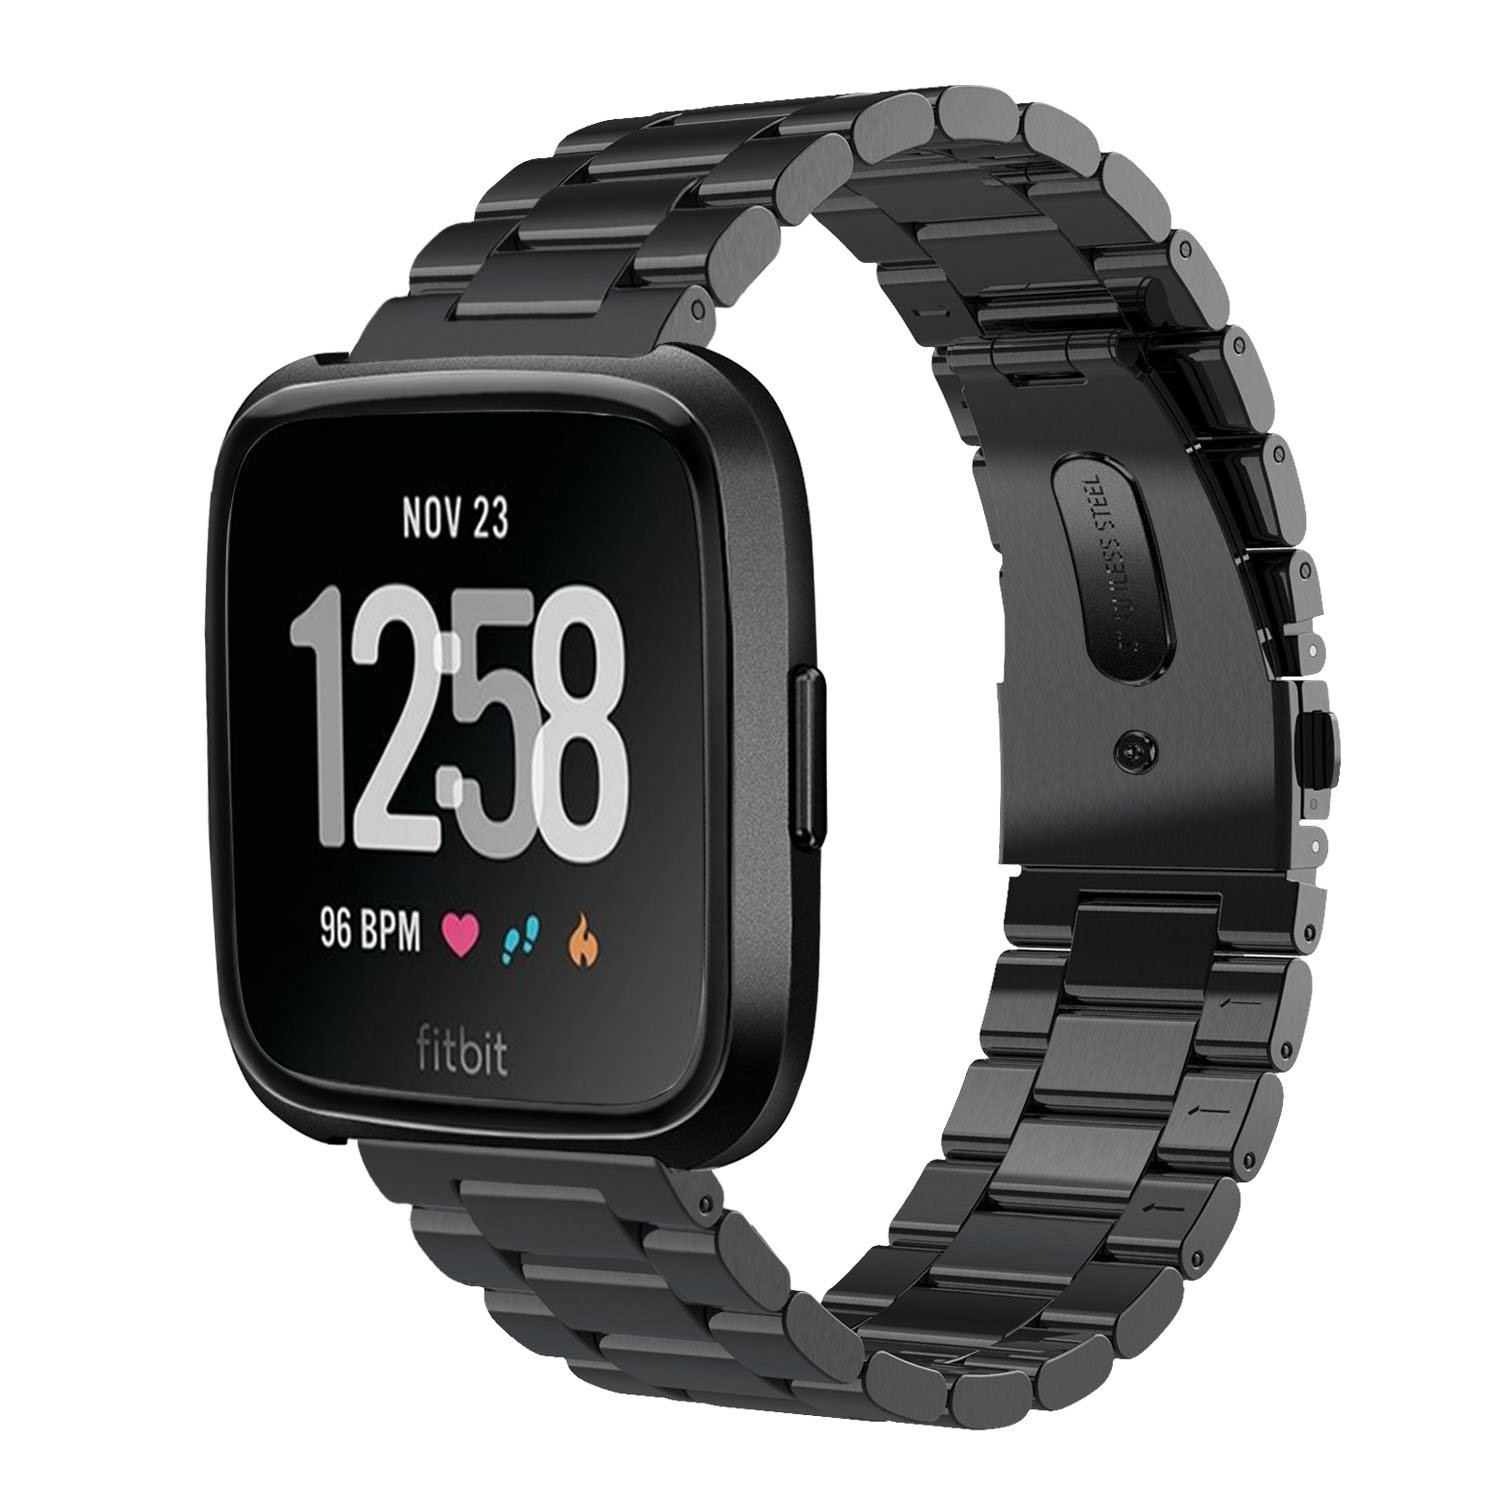 Fitbit Versa Band, VIGOSS Solid Black Stainless Steel Fitbit Versa Metal Bands Strap Men Women Replacement Bracelet Accessories Wristband for Fitbit Versa SmartWatch Large Small 5.5''-8.2''(Metal Black)